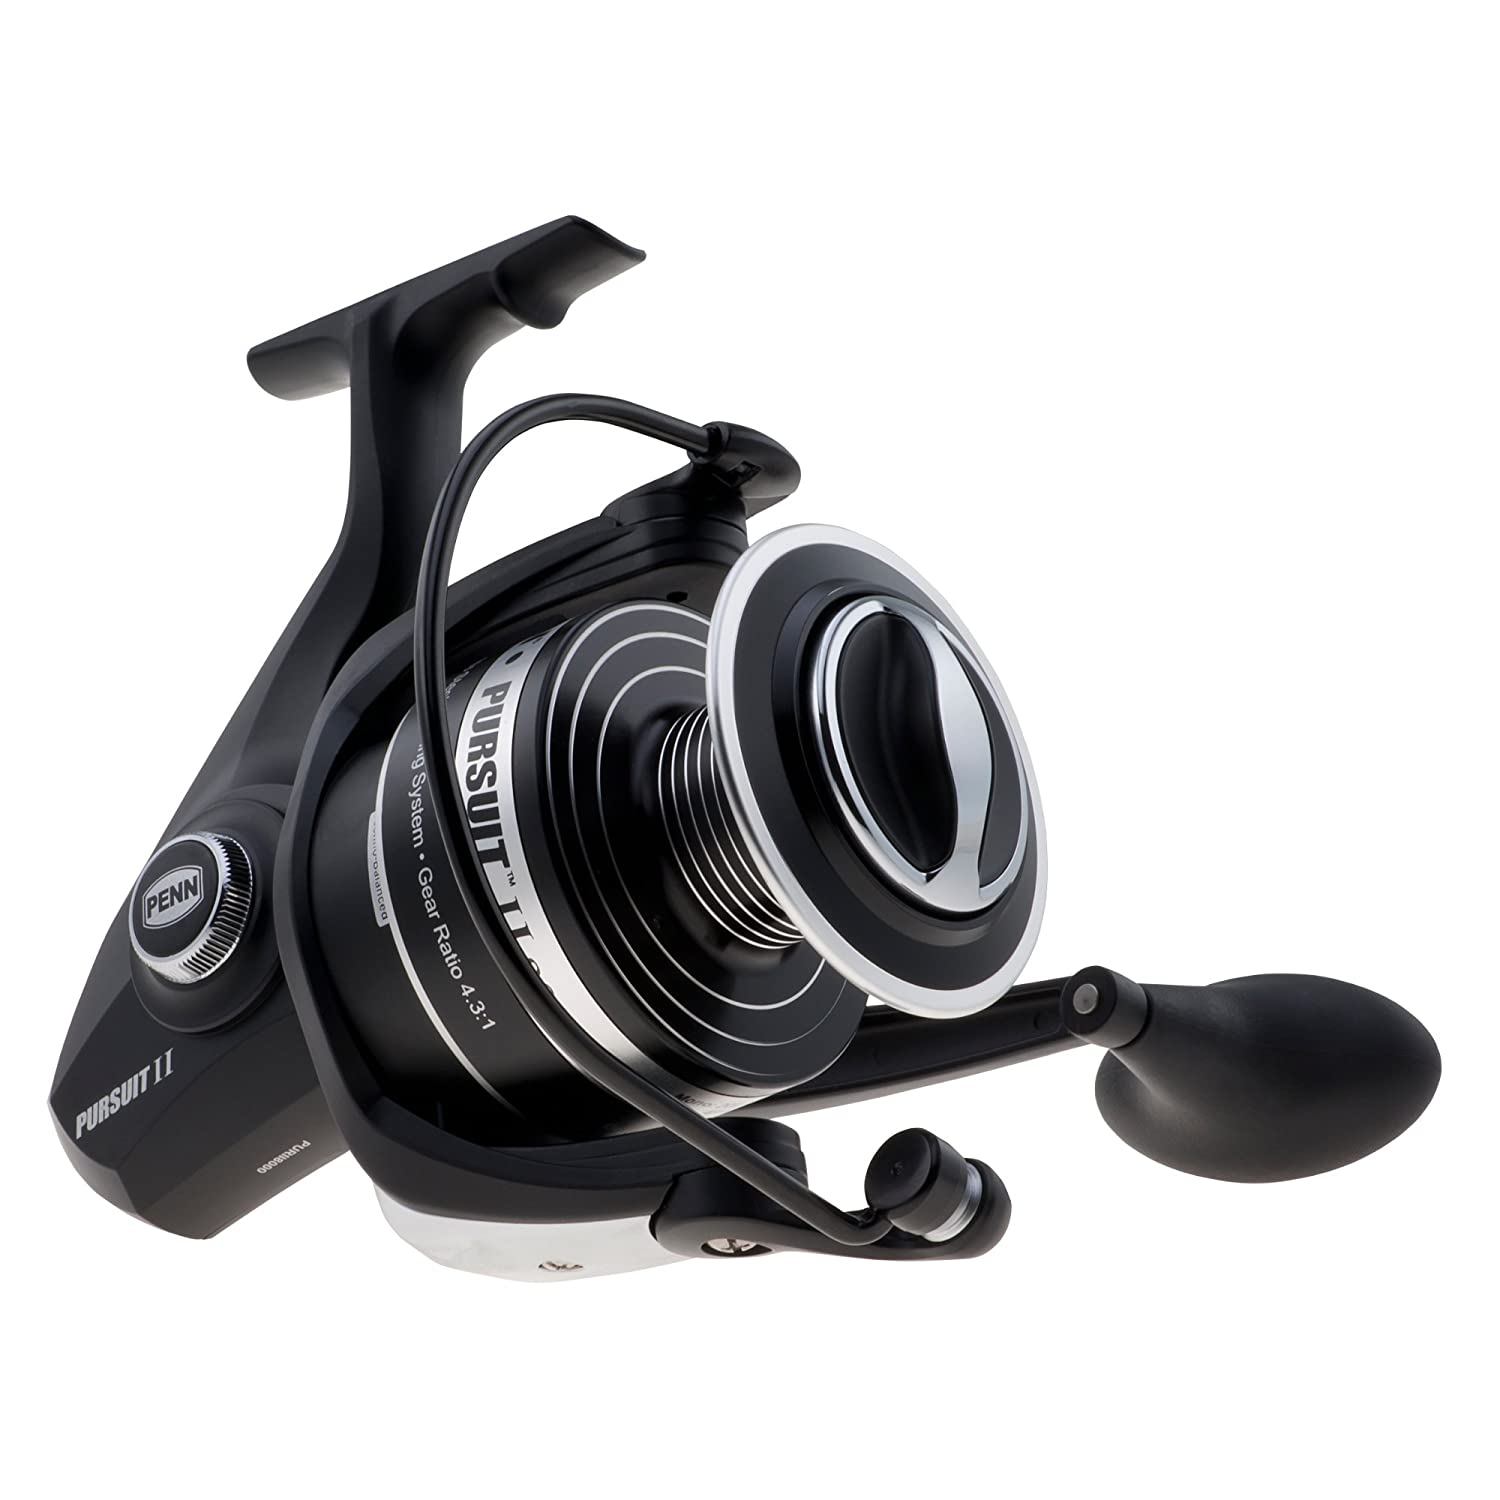 Penn Pursuit II 8000CP Spinning Reels